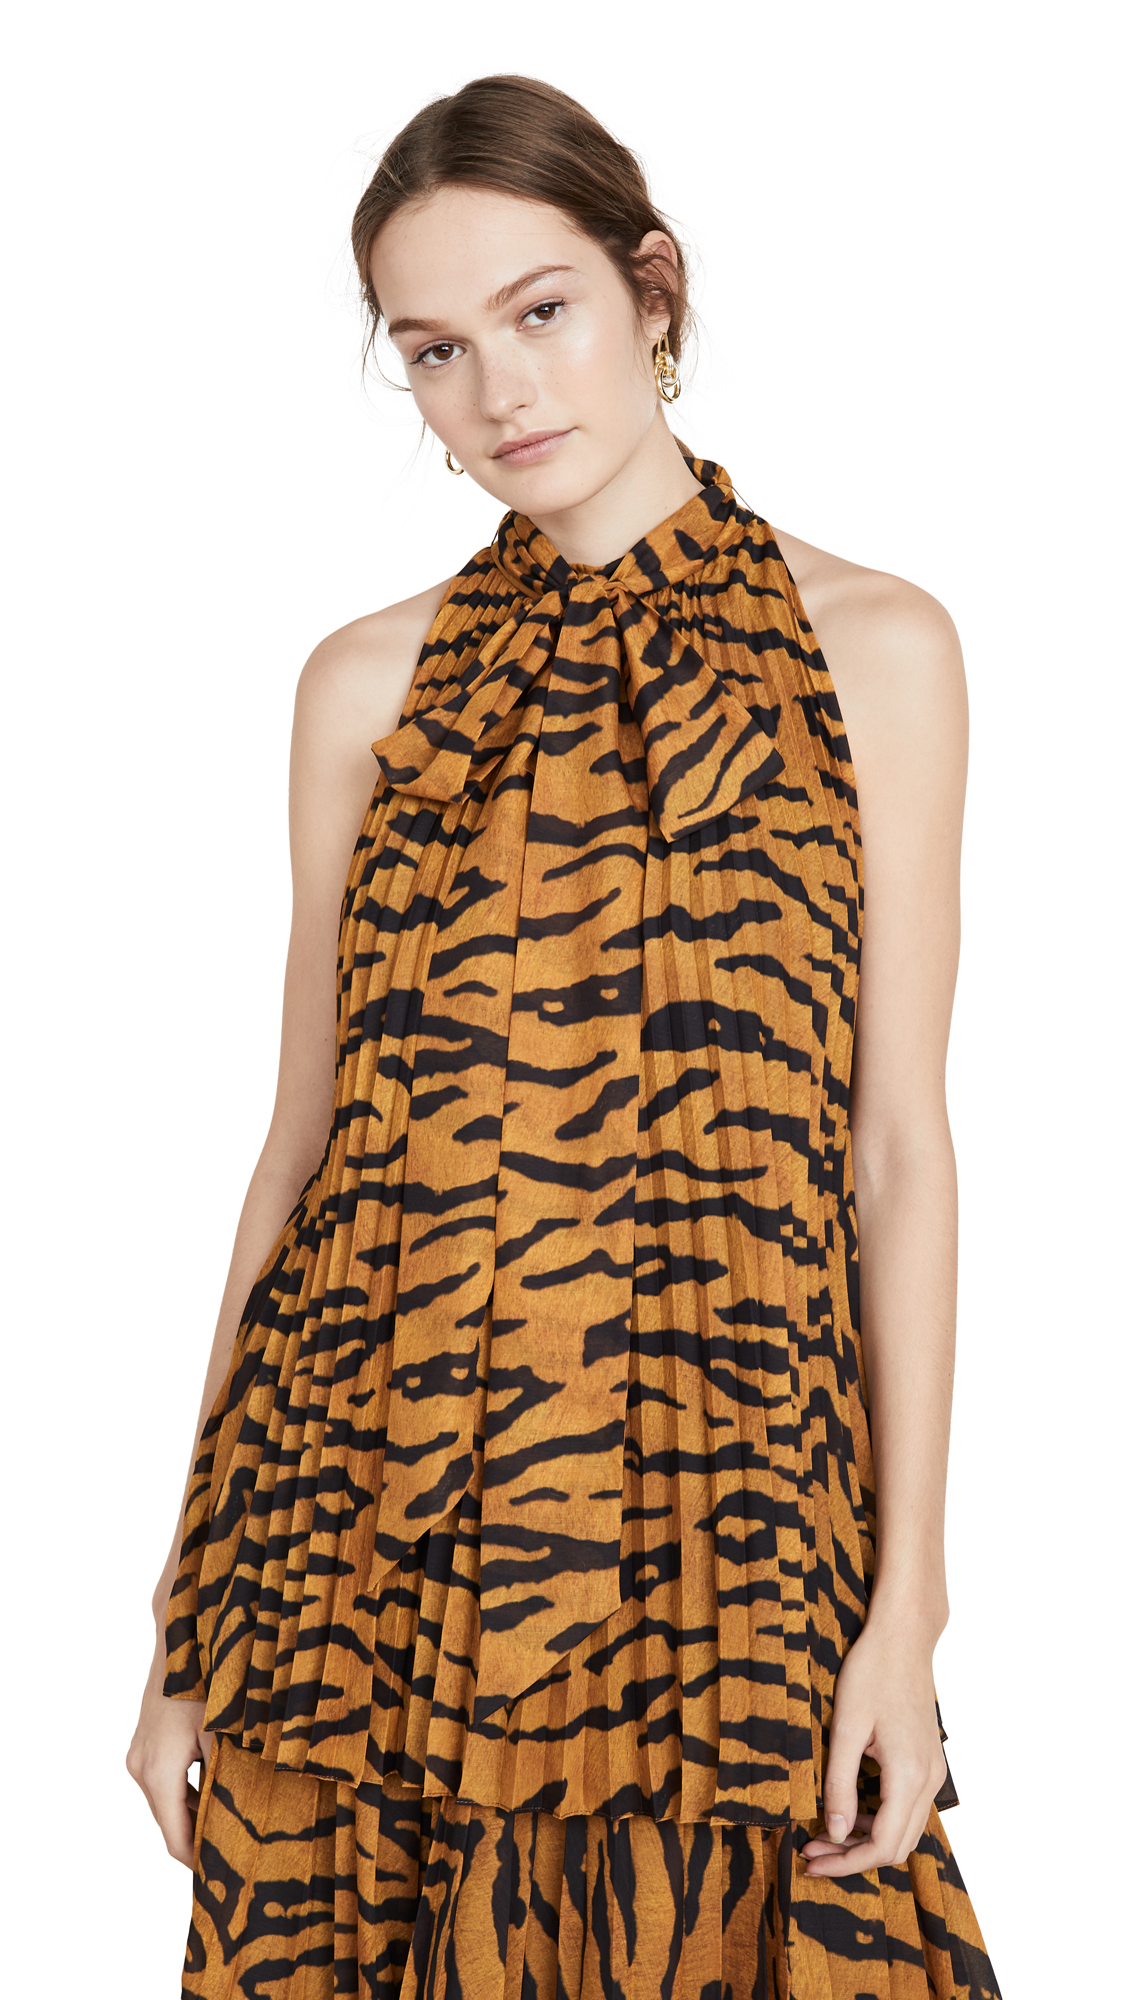 Adam Lippes Printed Voile Top - 60% Off Sale